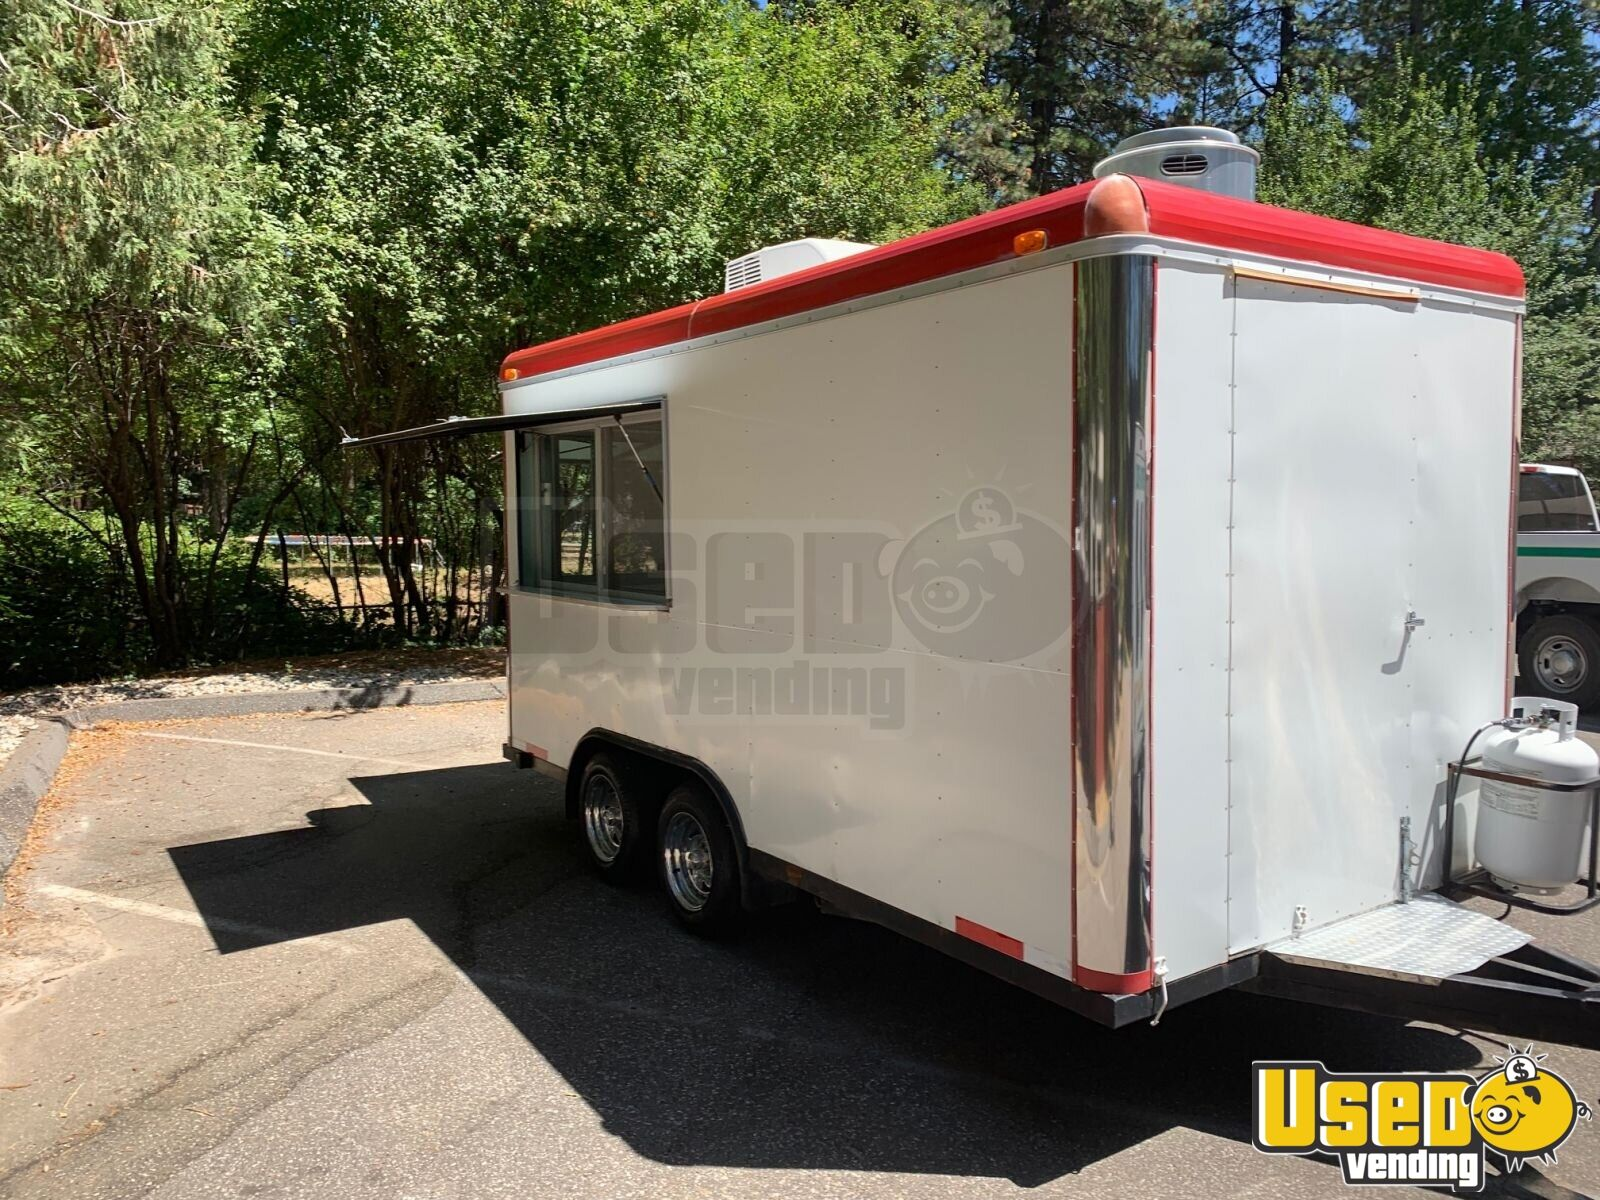 2008 Sanchez Trailers 7x14 All-purpose Food Trailer Air Conditioning California for Sale - 2